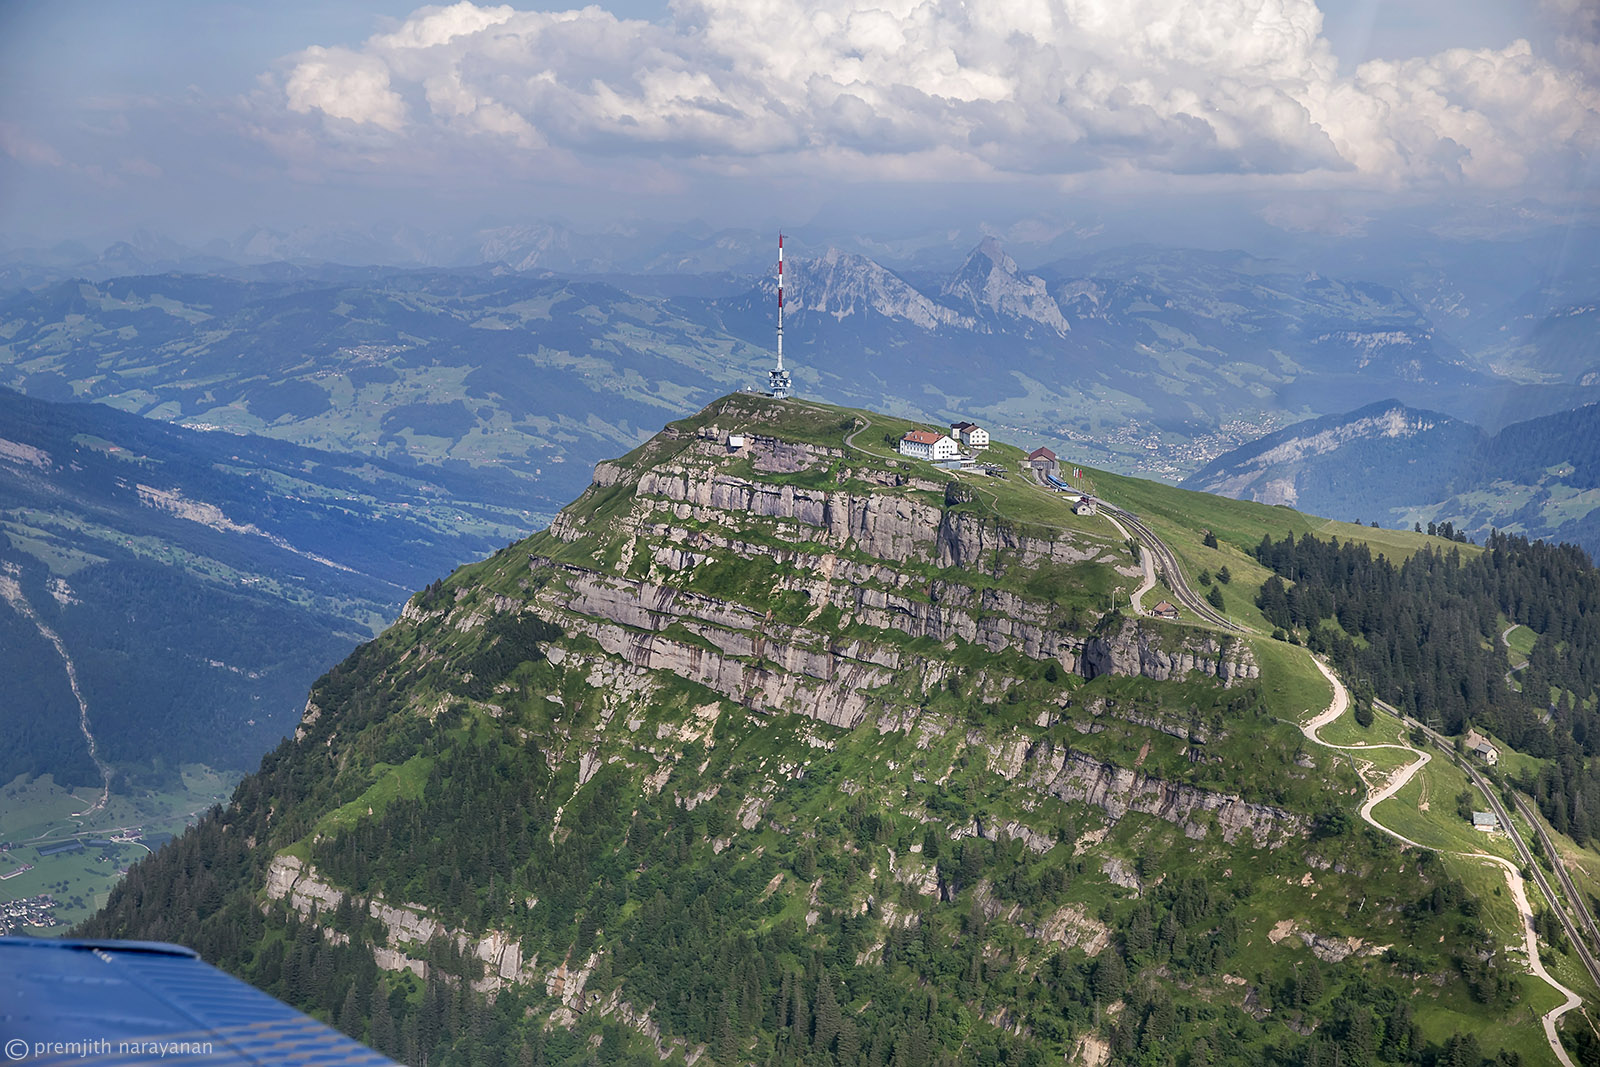 10.4 Rigi mountain with the pathways to the top and with Kleiner & Grosser Mythen in the background (PN)